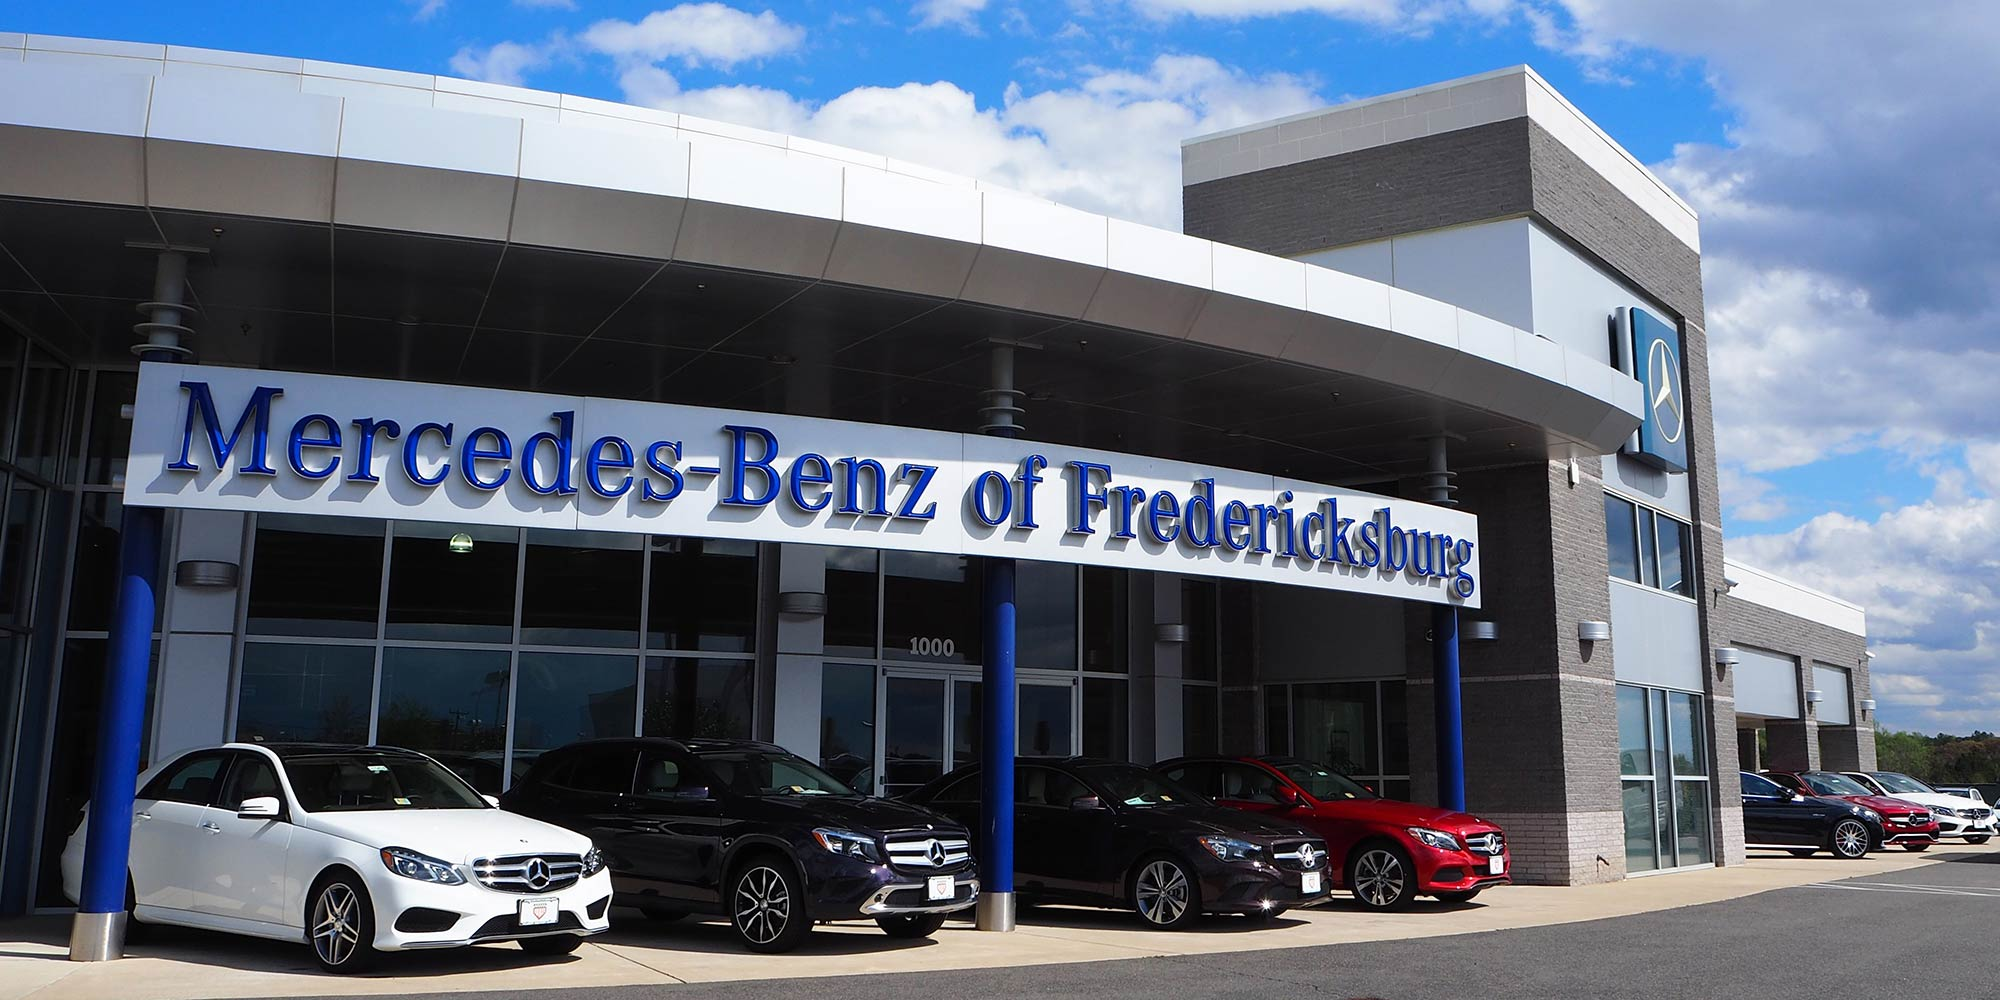 Mercedes benz dealer service and used car sales center in for Mercedes benz dealers in va